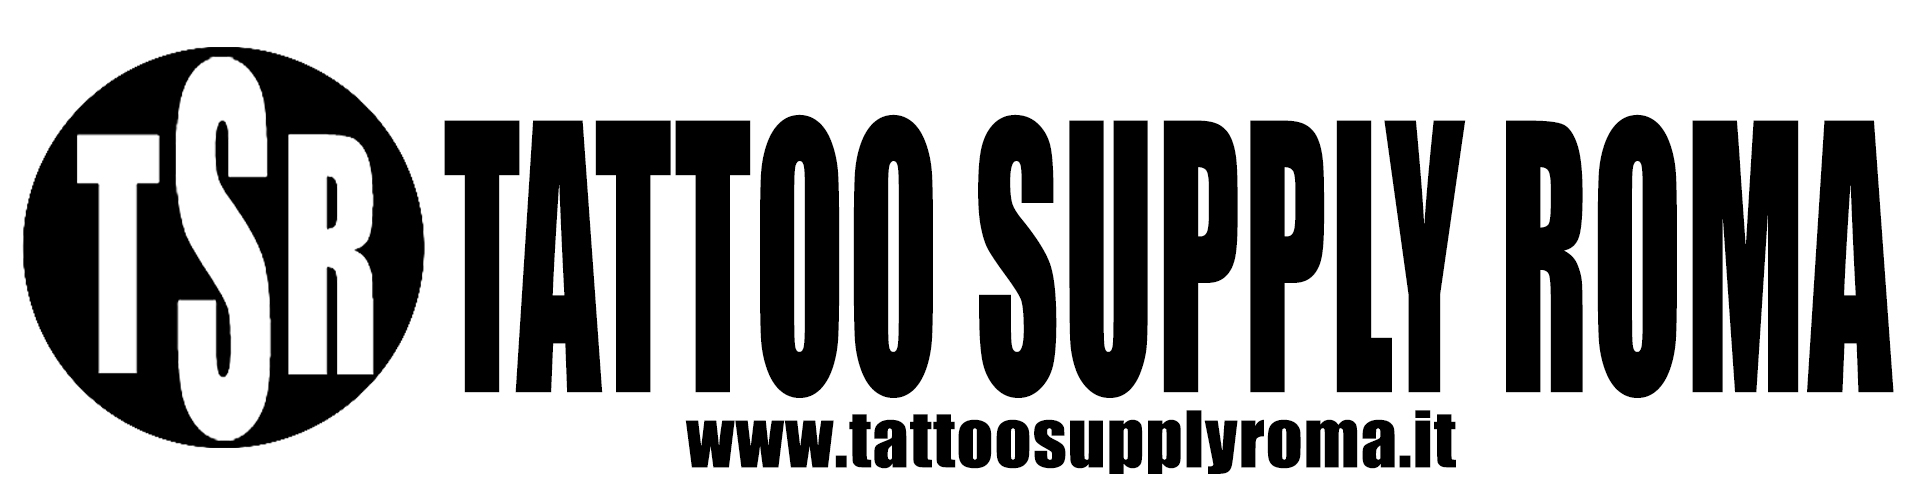 TATTOO SUPPLY ROMA